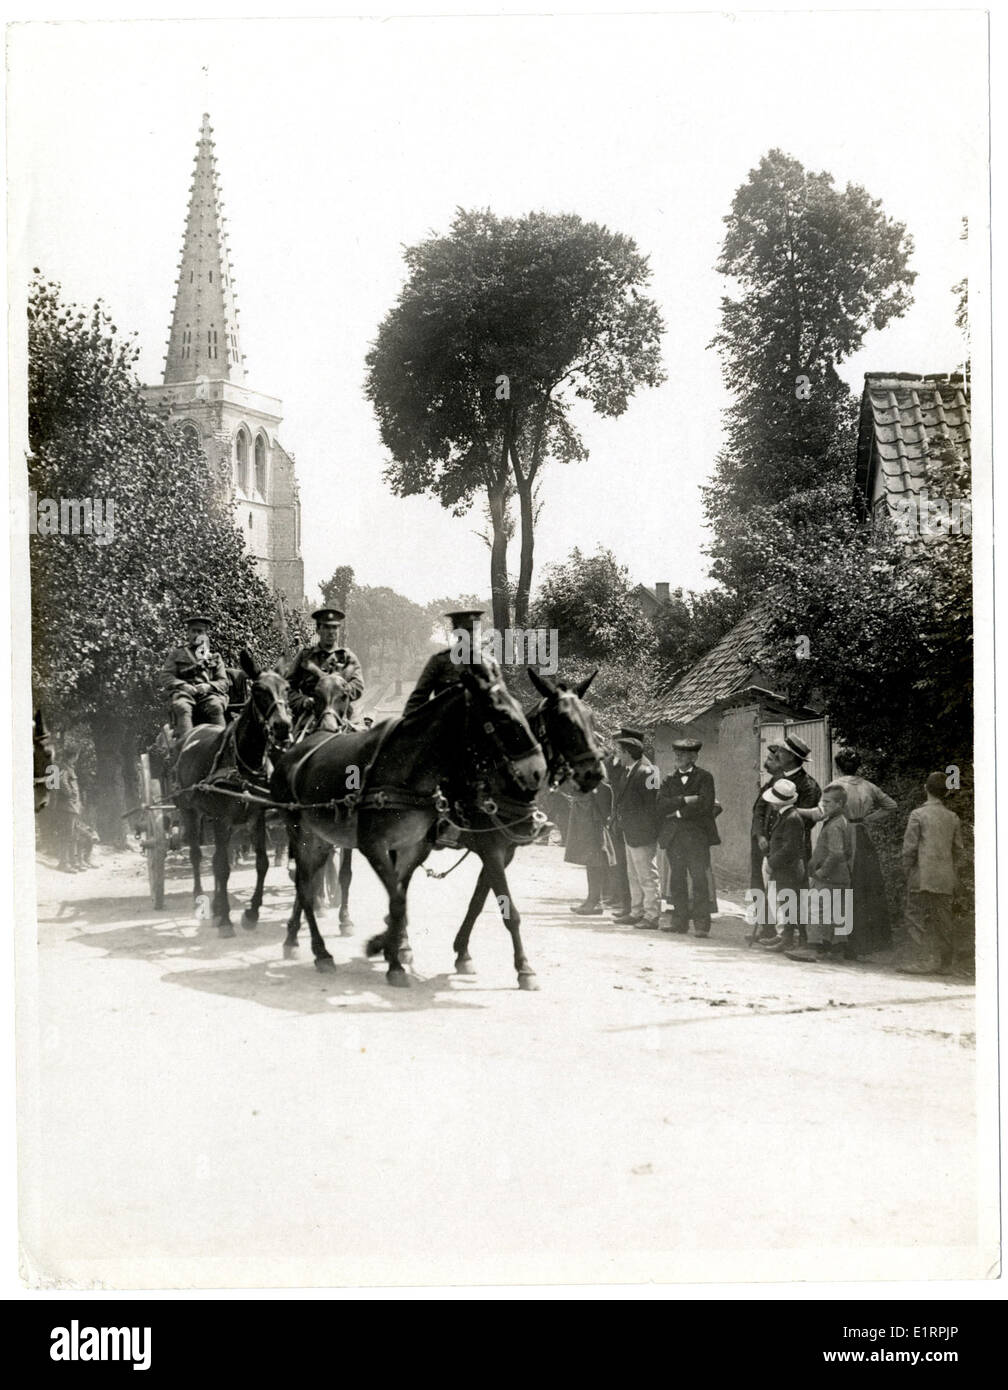 Indian cavalry & transport passing through a French town [Estrée Blanche]. . Stock Photo